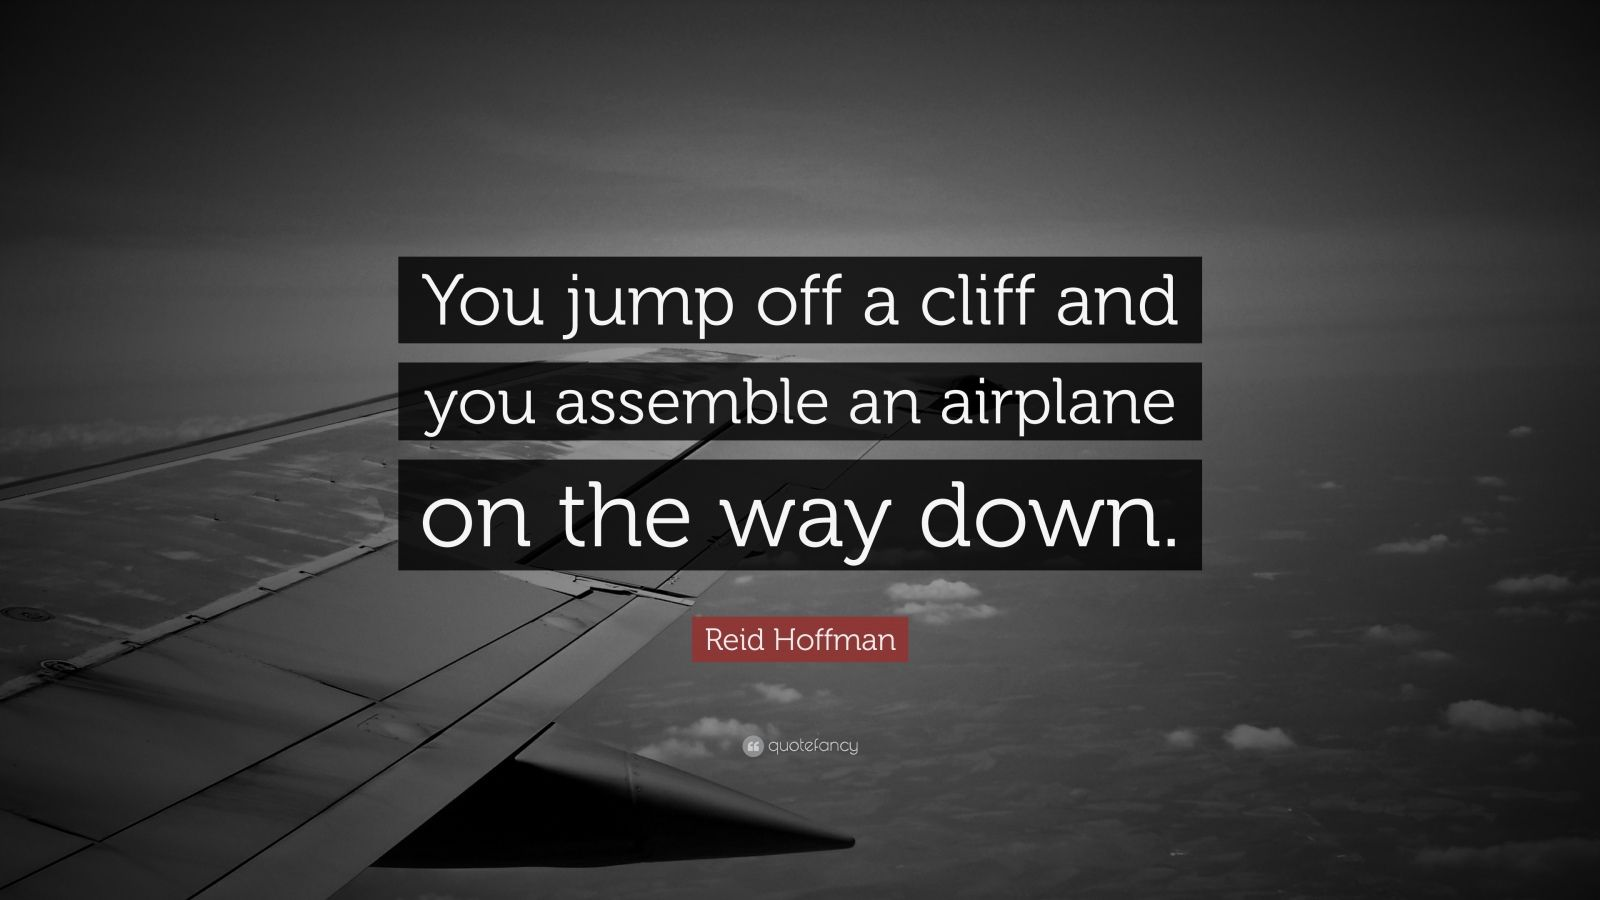 """Reid Hoffman Quote: """"You jump off a cliff and you assemble an airplane on the way down."""""""